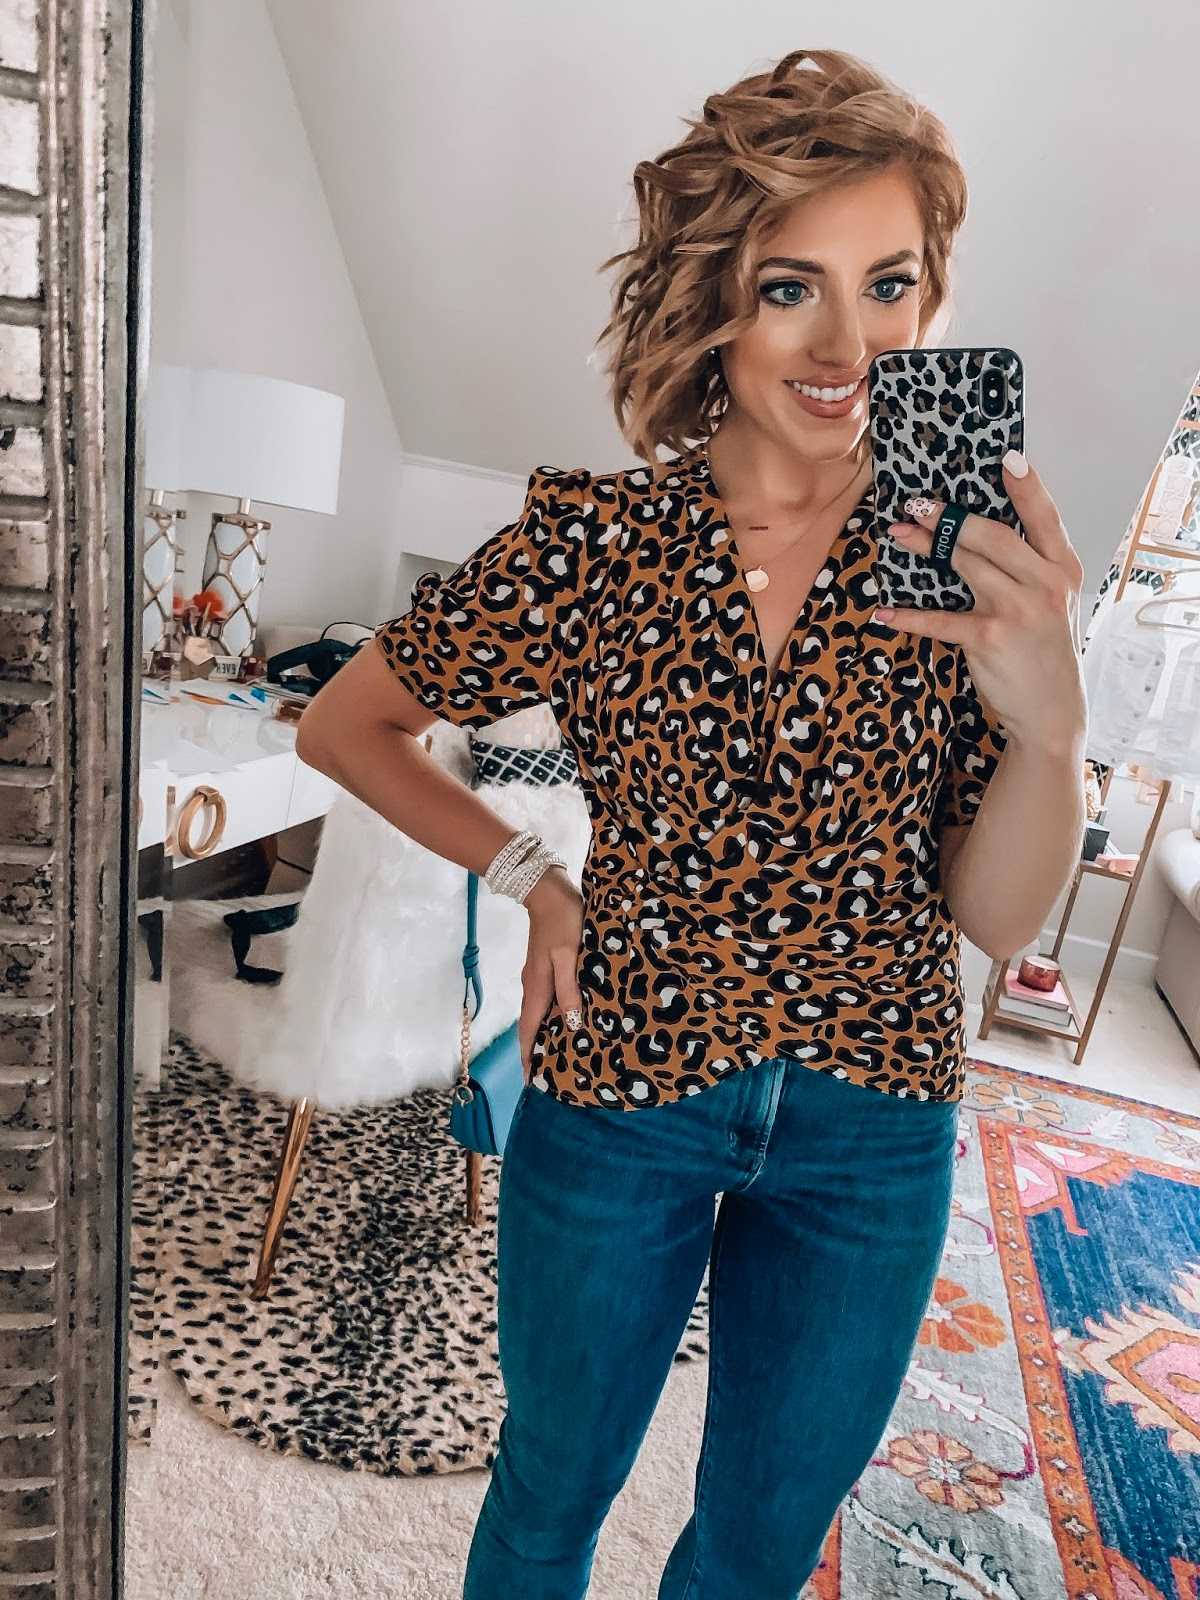 Target Fall Finds: Part One - Under $30 Leopard Wrap Top - Something Delightful Blog